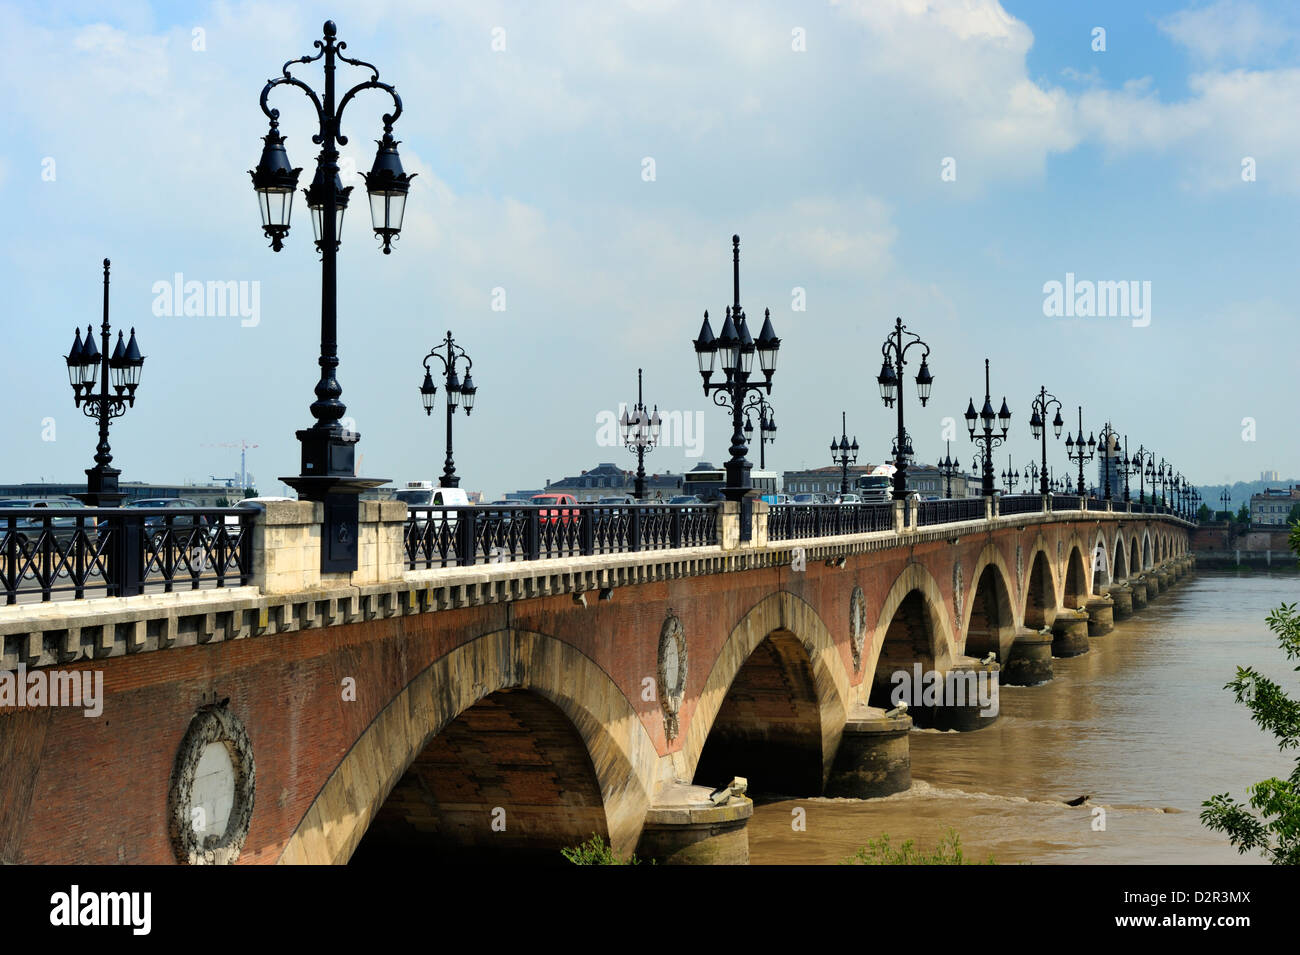 Pont de Pierre sur la Garonne, Bordeaux, UNESCO World Heritage Site, Gironde, Aquitaine, France, Europe Photo Stock